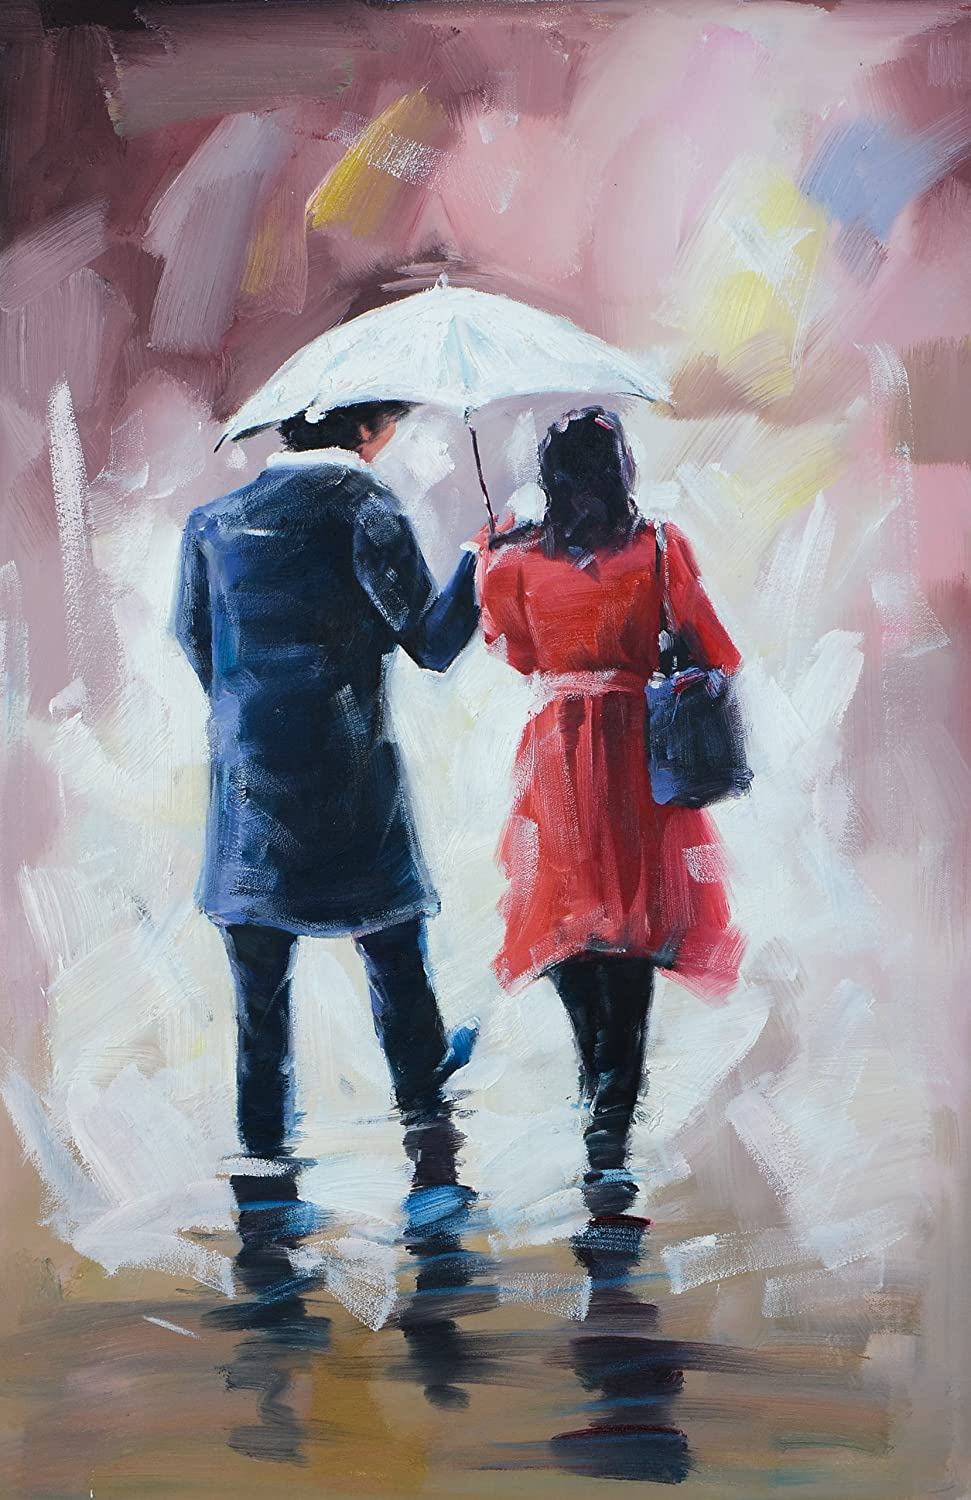 Amazon Com Love Couple Walking In The Rain Abstract Romantic Oil Painting Printed On Canvas Home Decor 2436inch Posters Prints